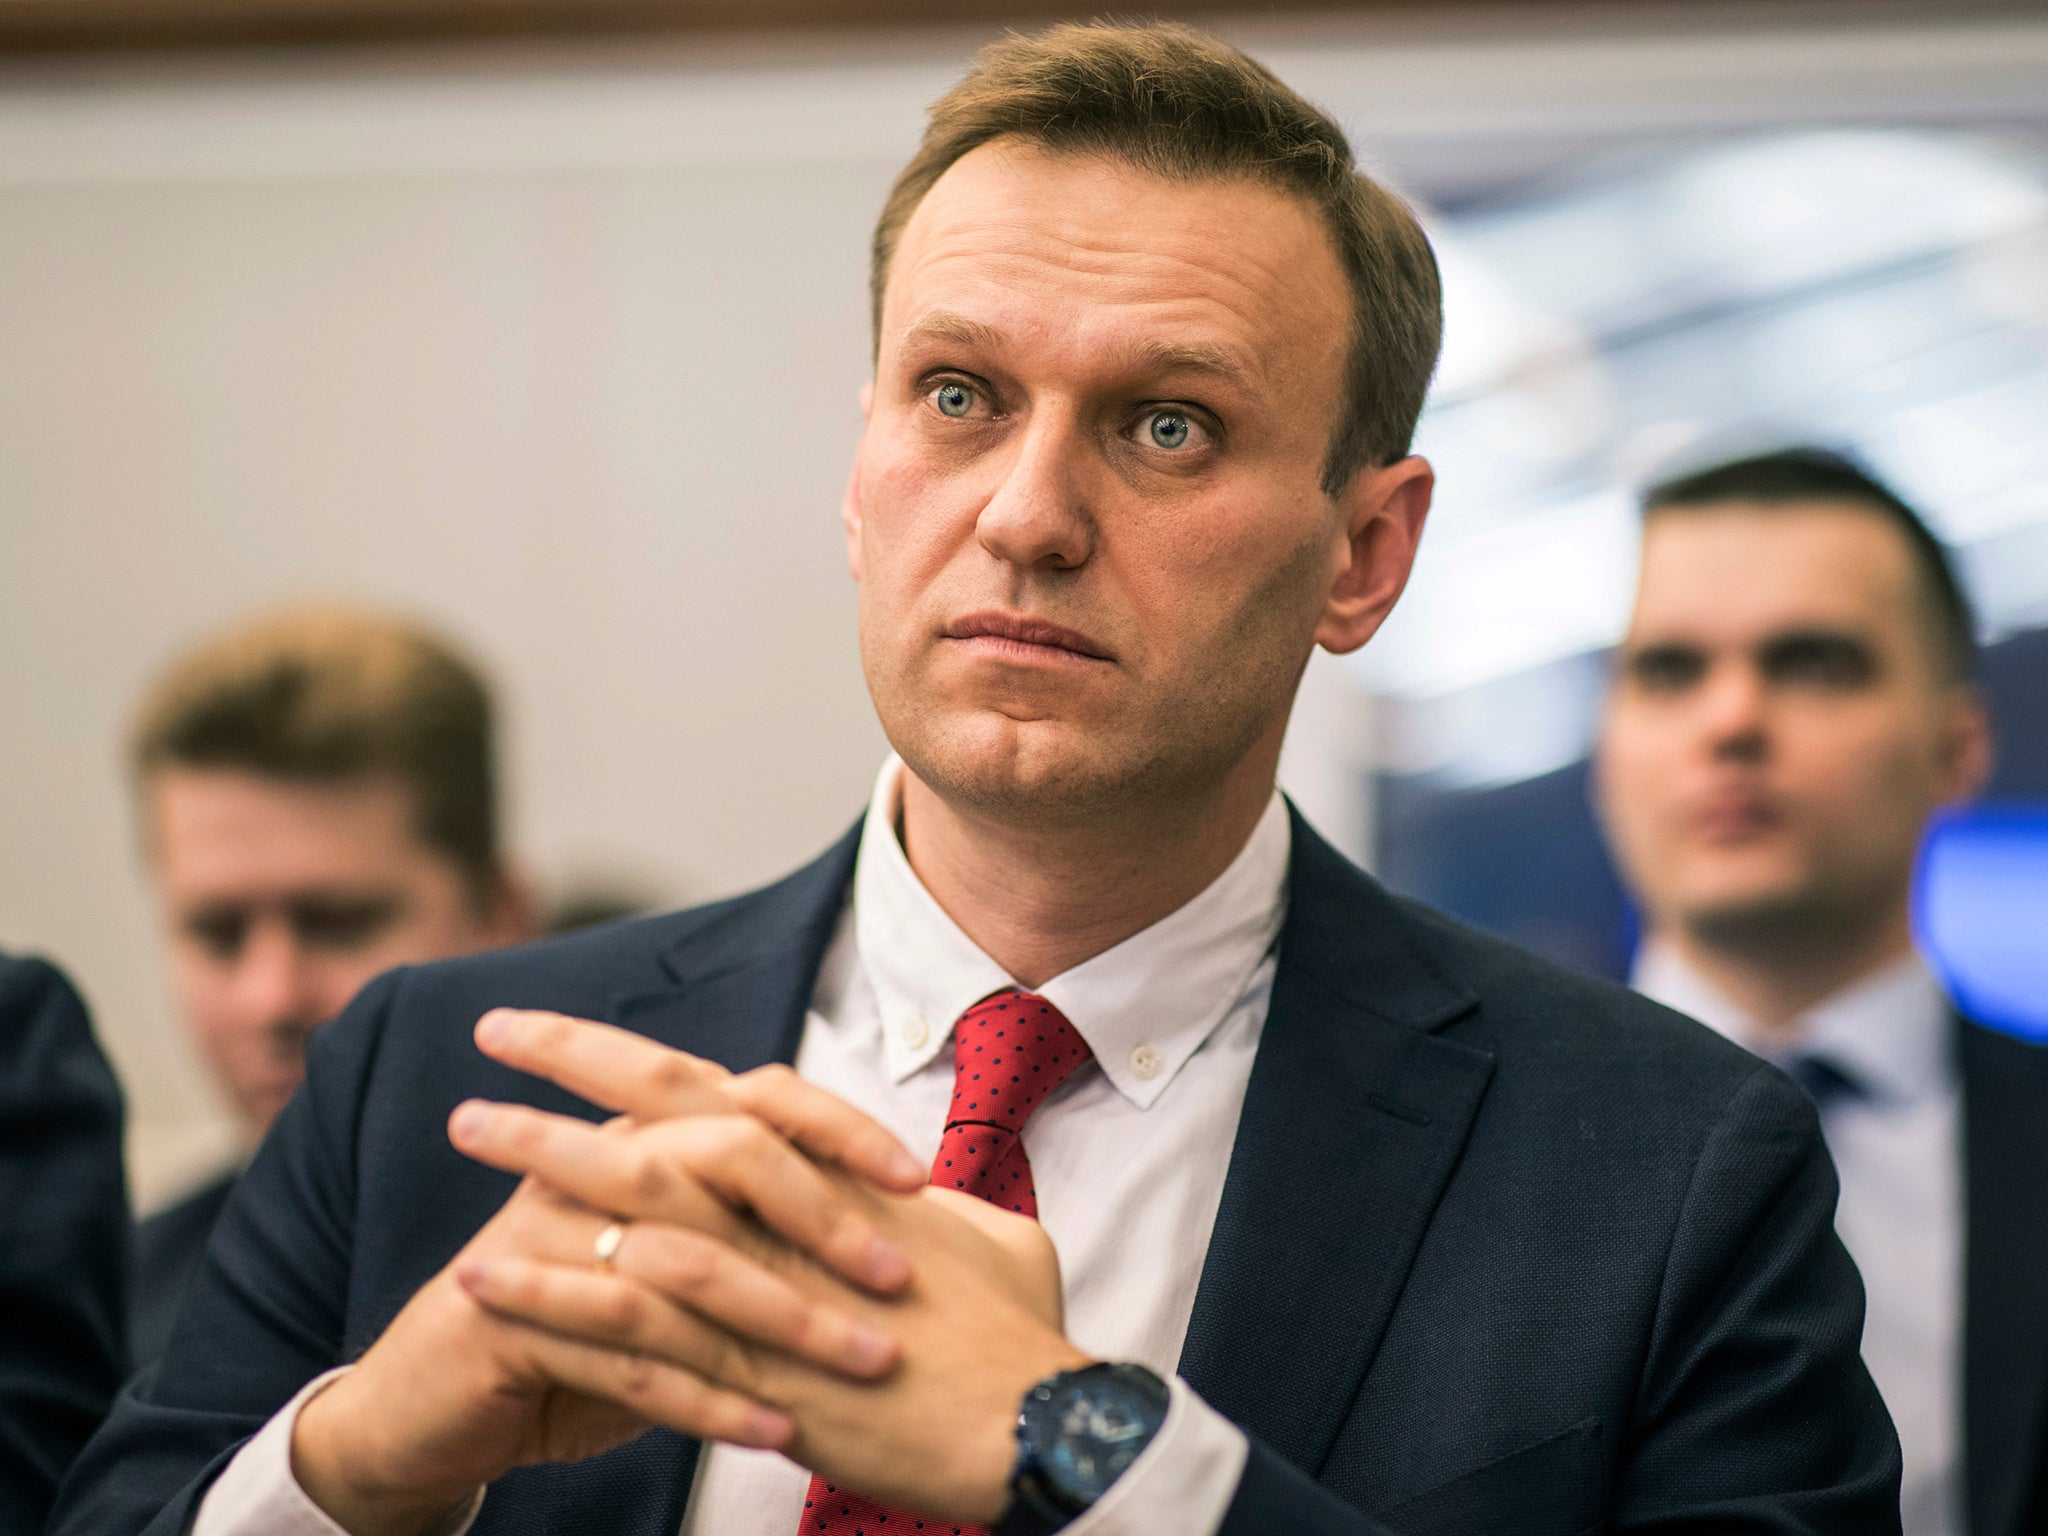 Russia Upholds Ban On Putin S Biggest Rival Alexei Navalny From Running In 2018 Election The Independent The Independent